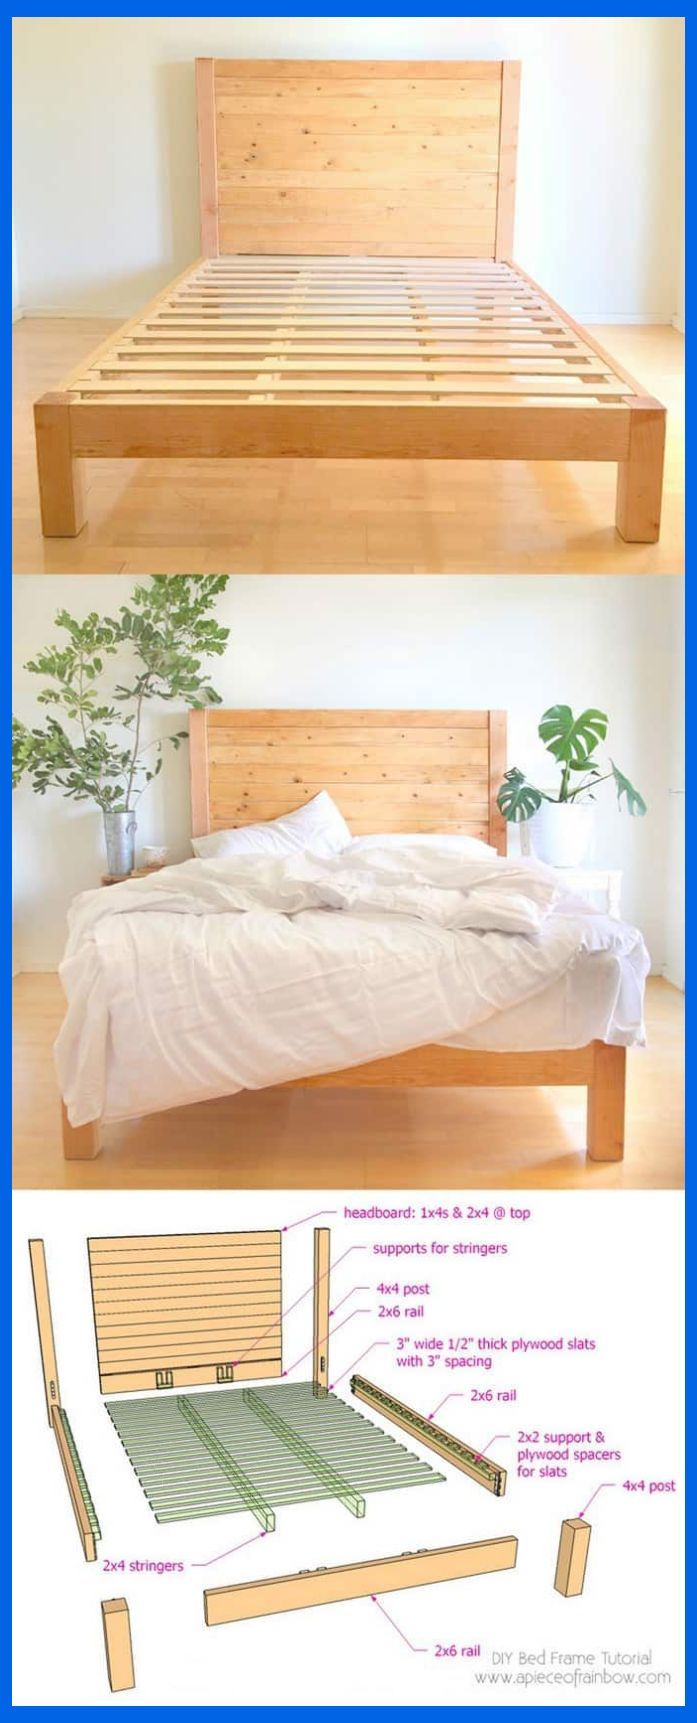 During Chillier Months These Wood Homemade Headboards Would Keep